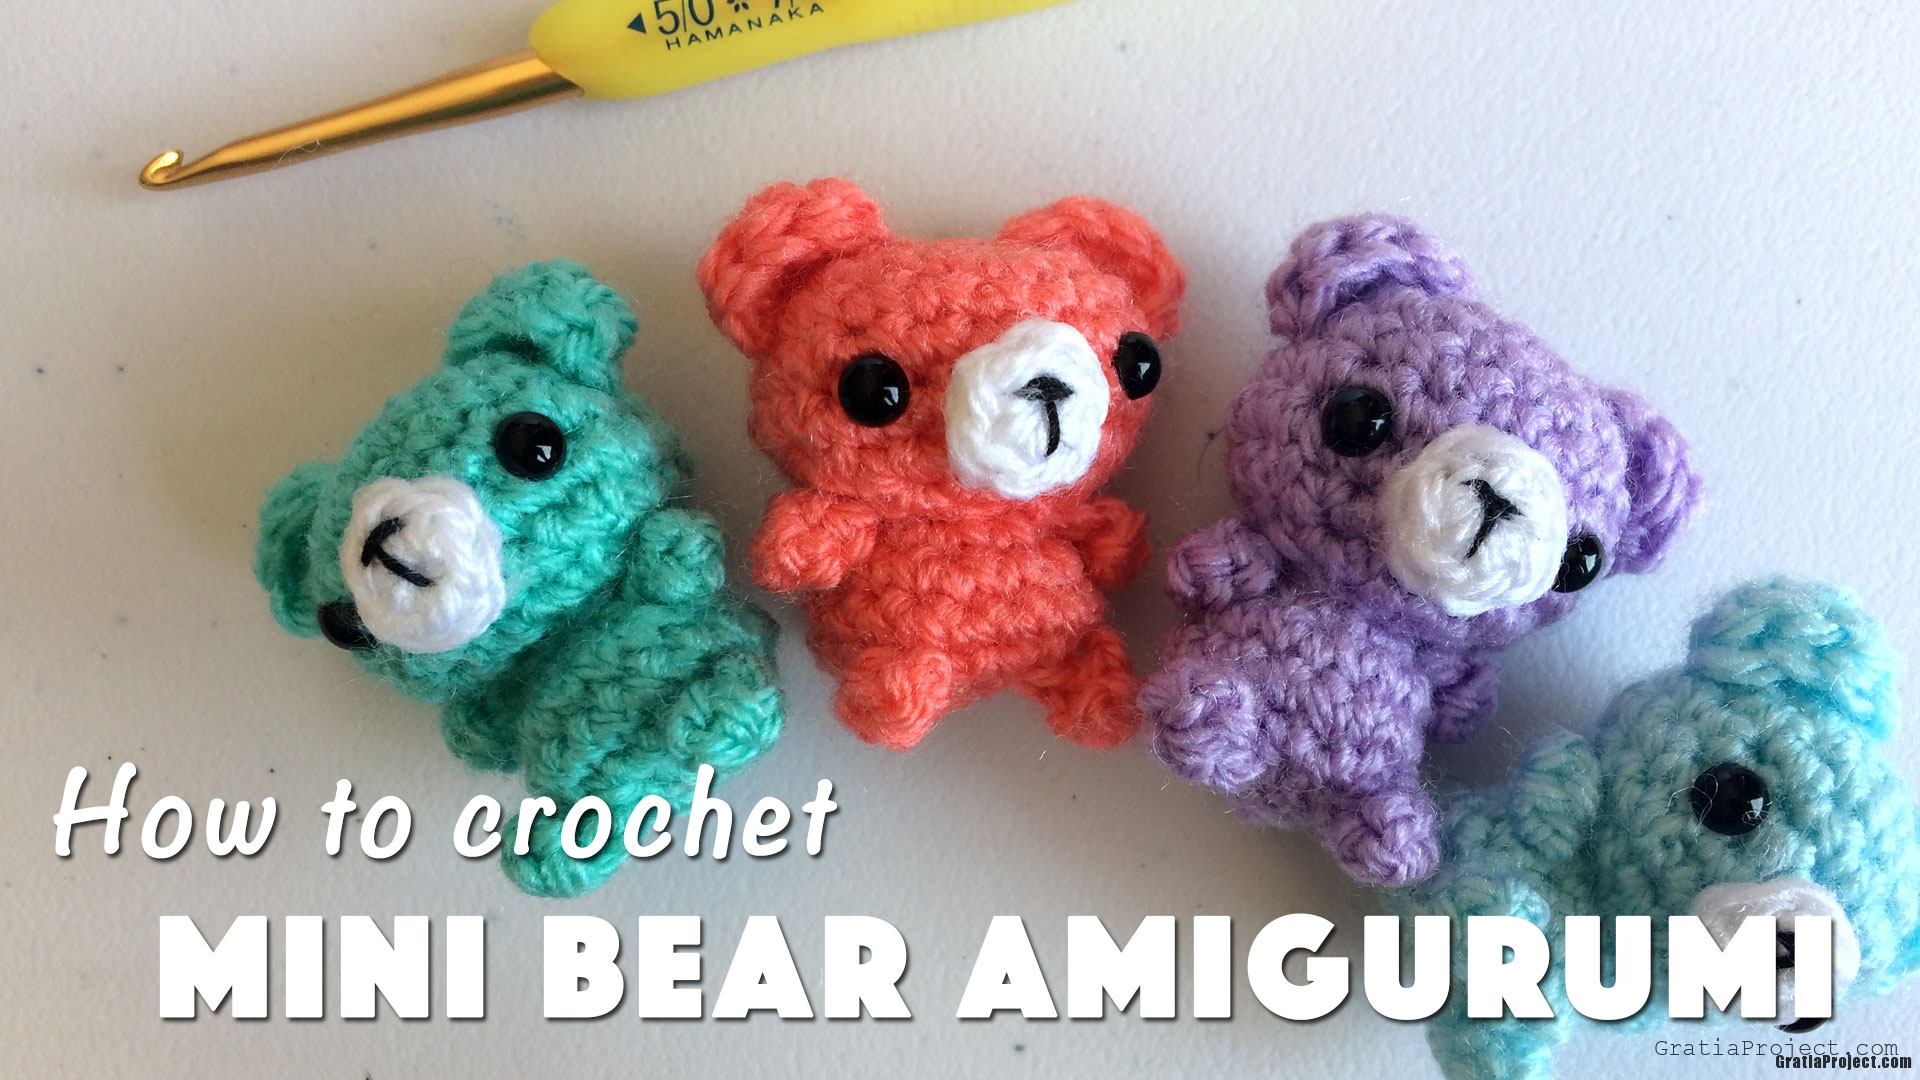 how-to-crochet-mini-bear-amigurumi